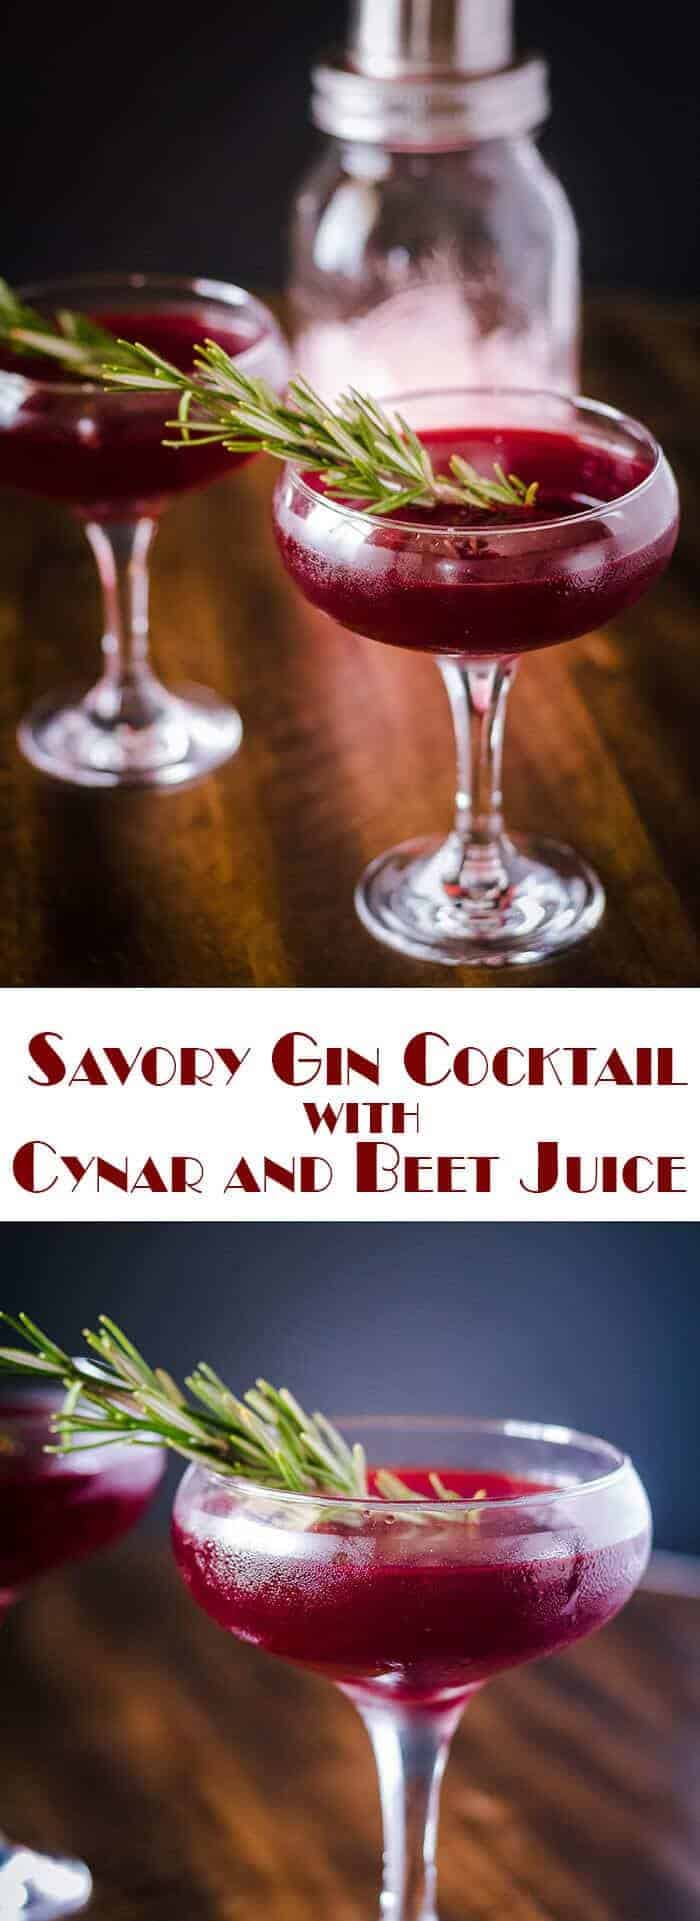 Savory Gin Cocktail with Cynar and Beet Juice combines aromatic gin with Cynar aperitif (aromatic and vegetal) with beet juice, and topped off with savory or aromatic bitters in a delightfully savory and beautiful cocktail! savory cocktail | savory gin cocktail | cocktails | beet cocktail | Cynar | gin|